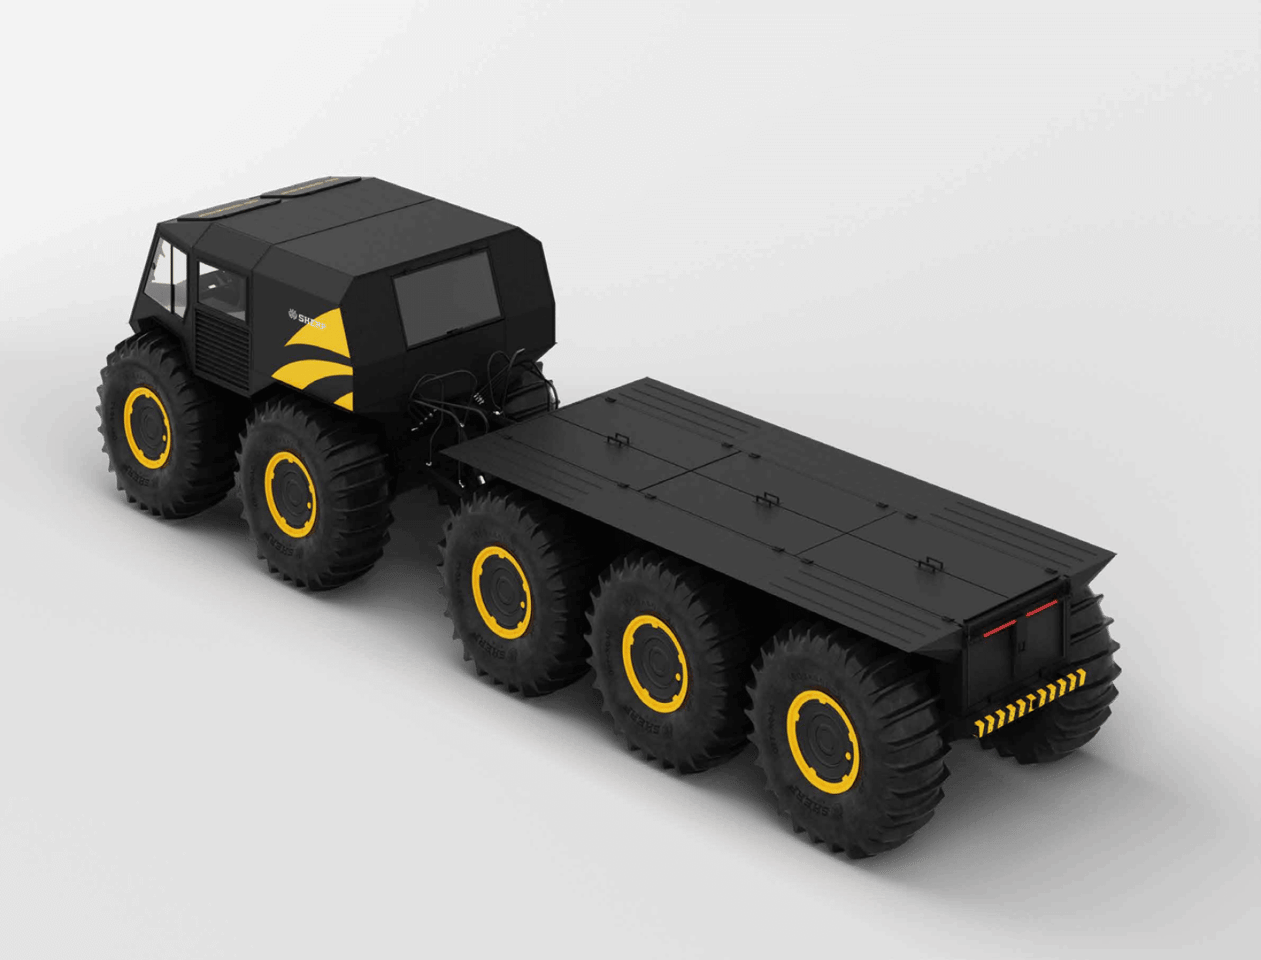 Sherp's new the Ark all-terrain amphibious vehicle adds some serious cargo/passenger capacity to the lineup